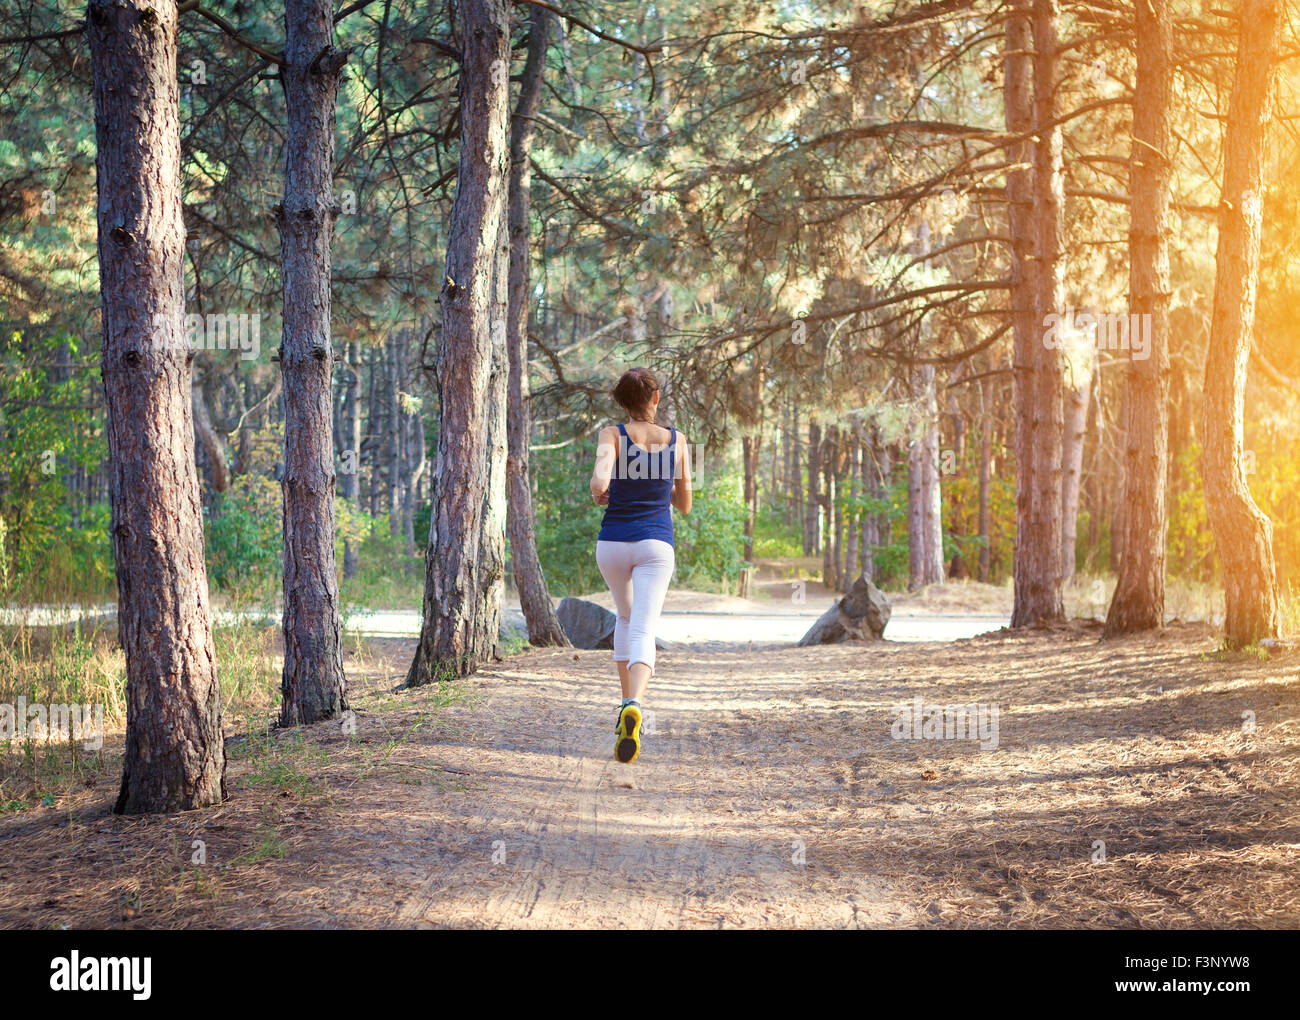 Young woman running on a rural road at sunset in autumn forest. Lifestyle sports background Stock Photo